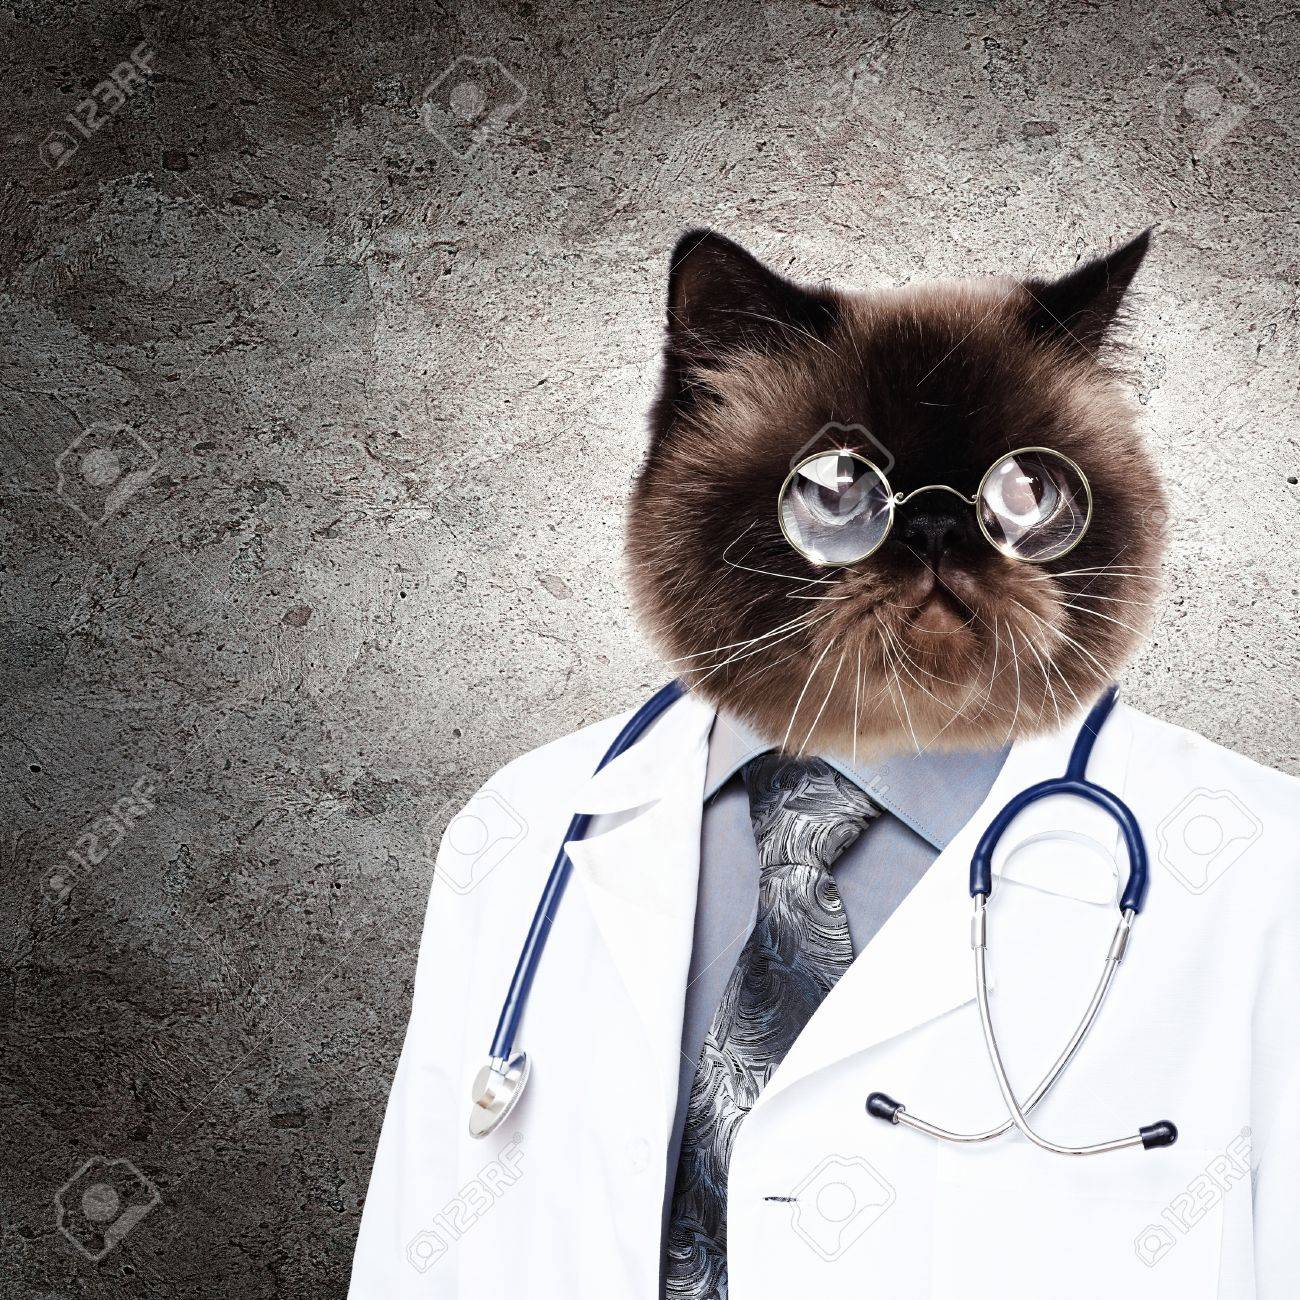 18747727-funny-fluffy-cat-doctor-in-a-robe-and-glasses-collage-Stock-Photo.jpg